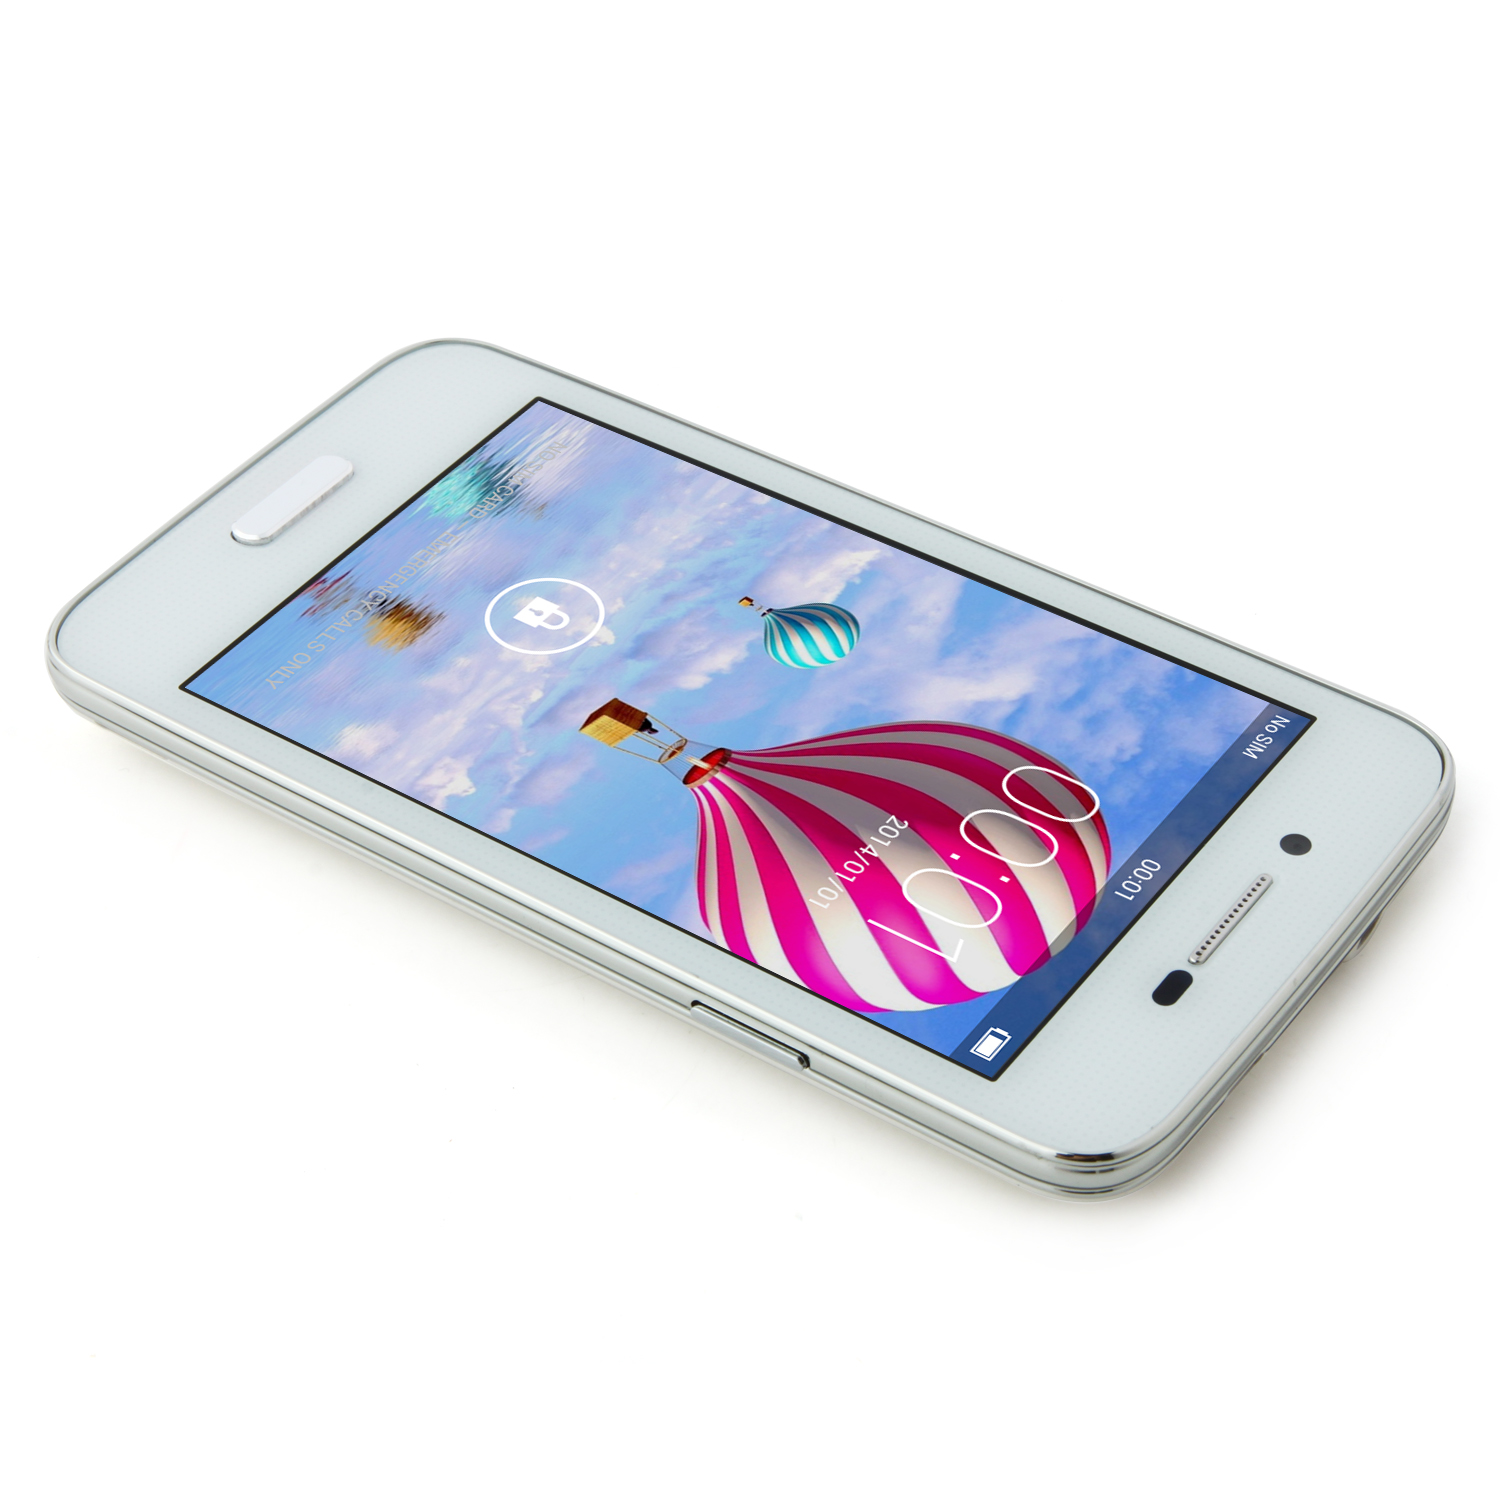 S55W Smartphone Android 4.2 MTK6572W 512MB 2GB 4.0 Inch 3G GPS White